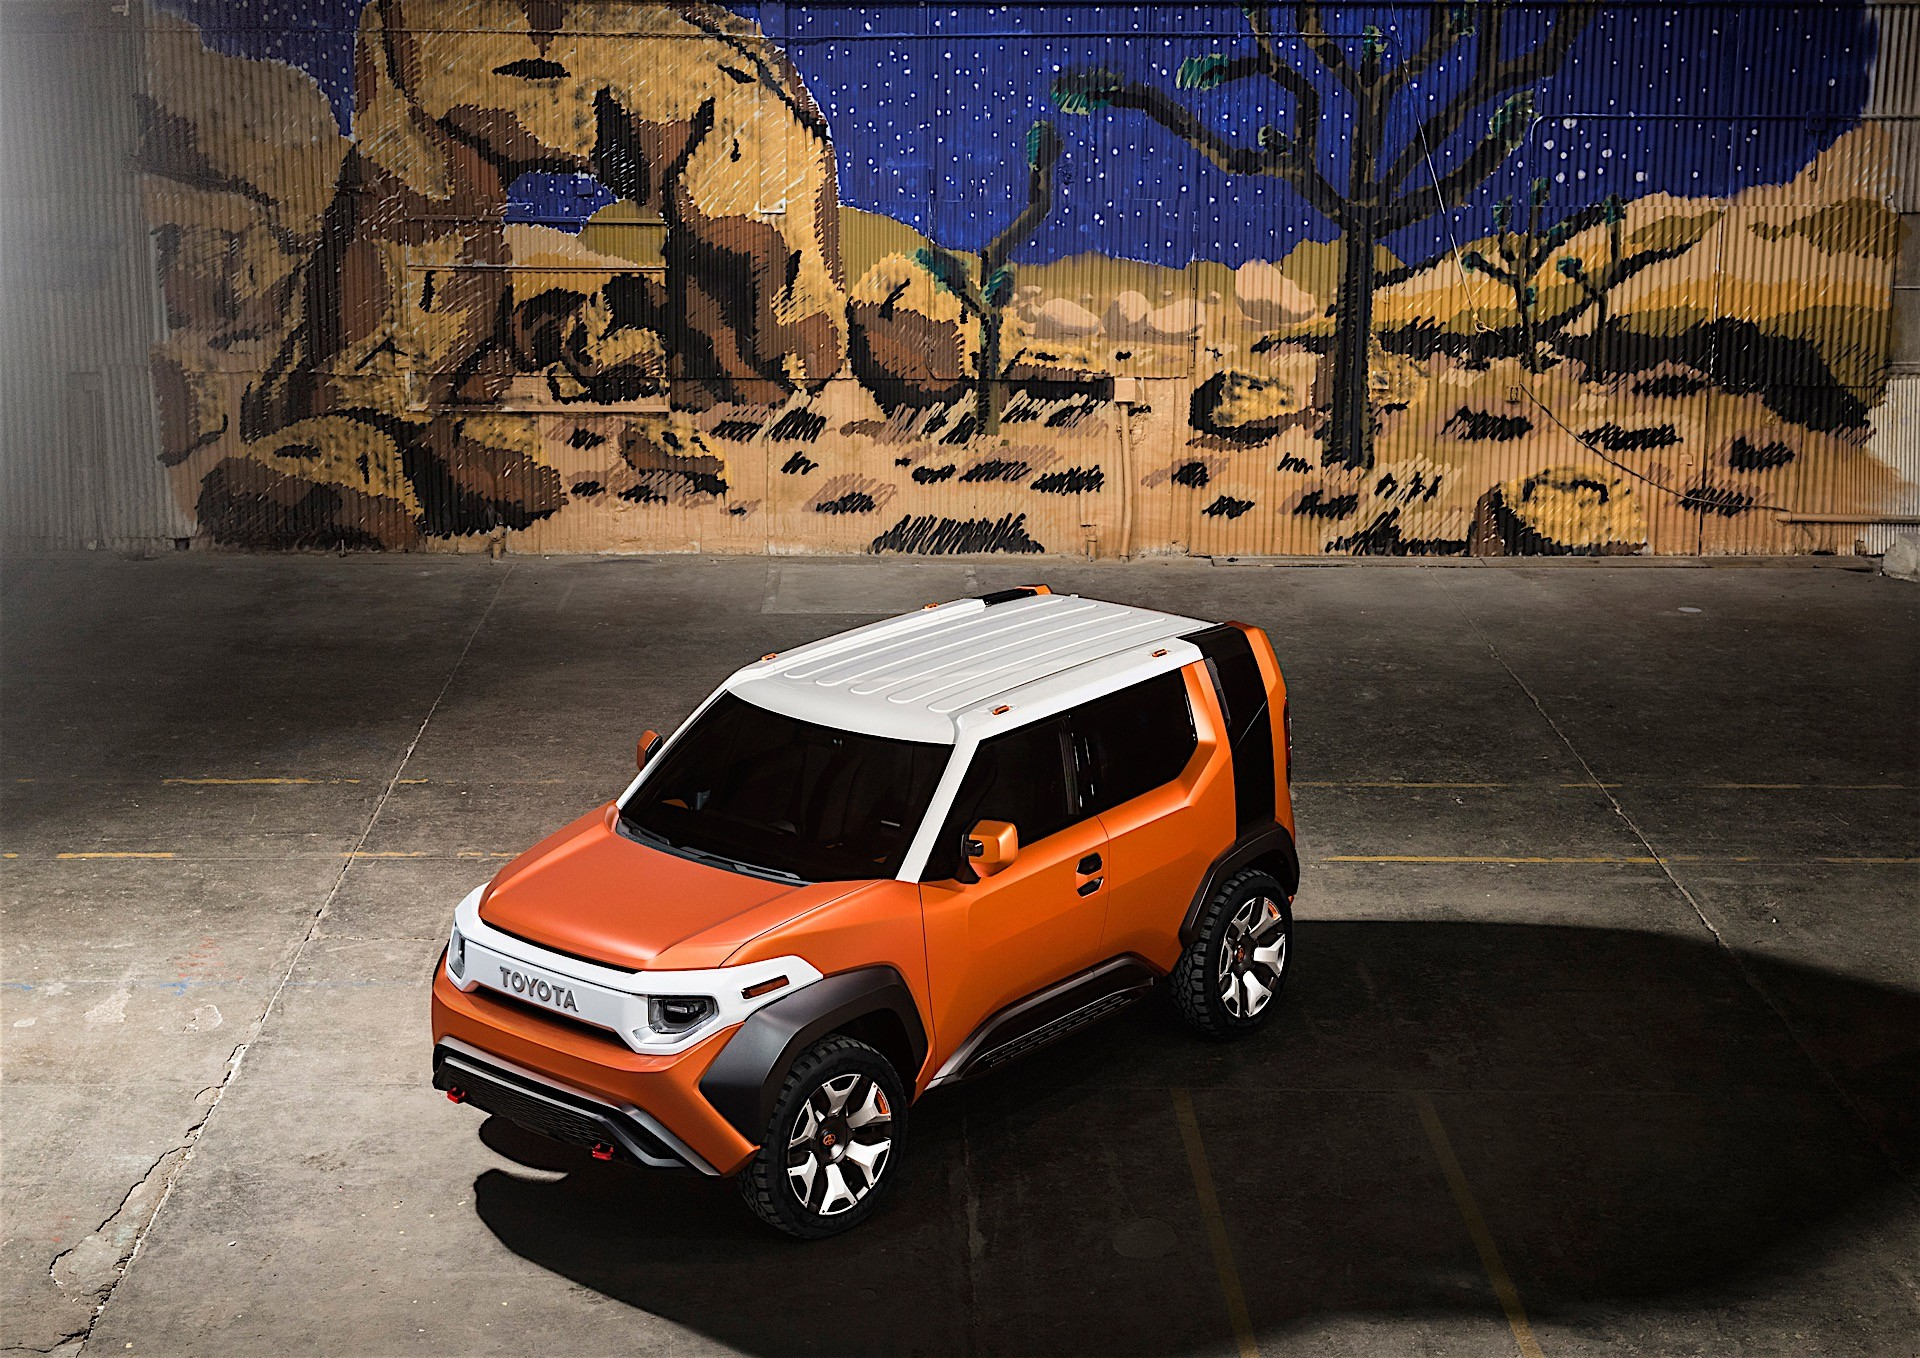 toyota angeles hr photo in front gallery scion los image news crossover features side debuts concept c